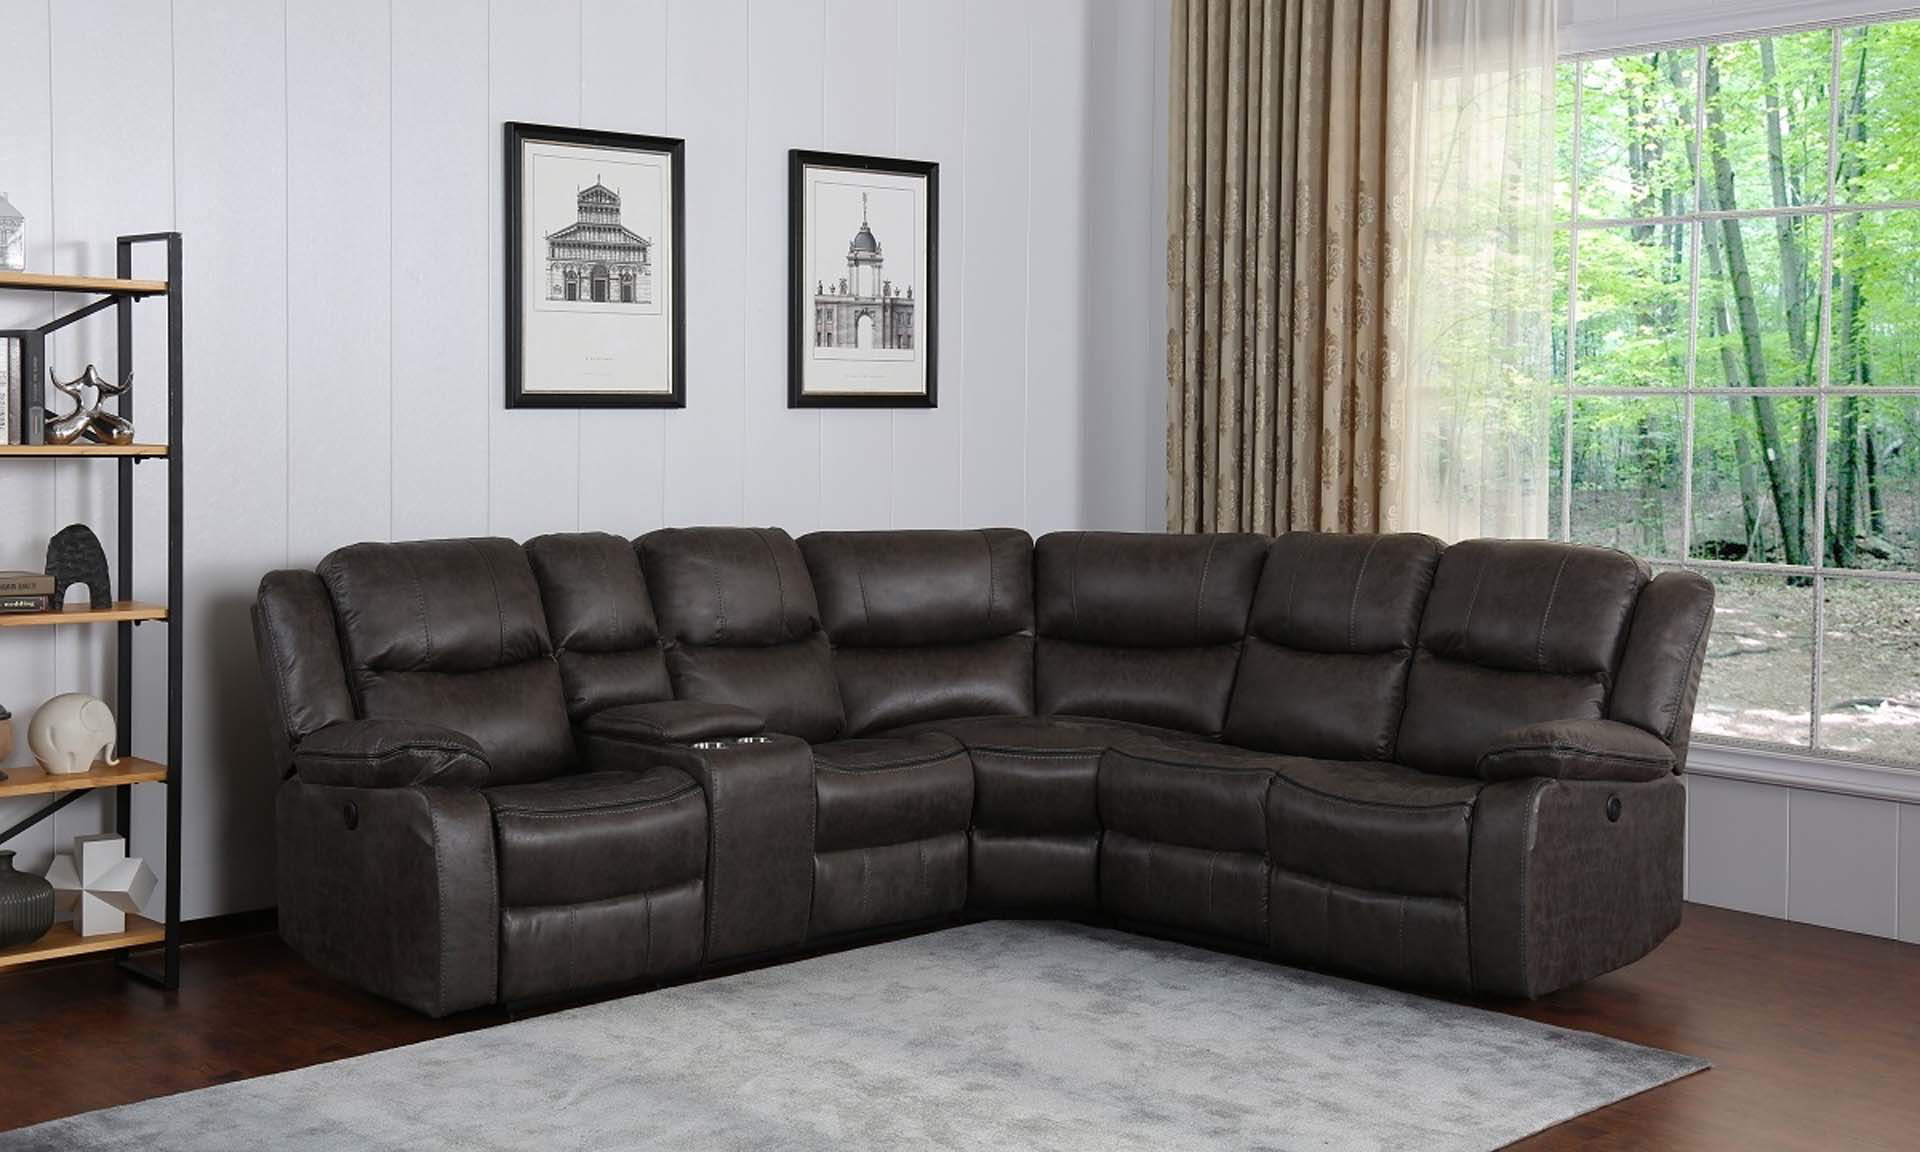 Contemporary dual power reclining sectional sofa with storage in gray faux leather upholstery - Recliners Closed